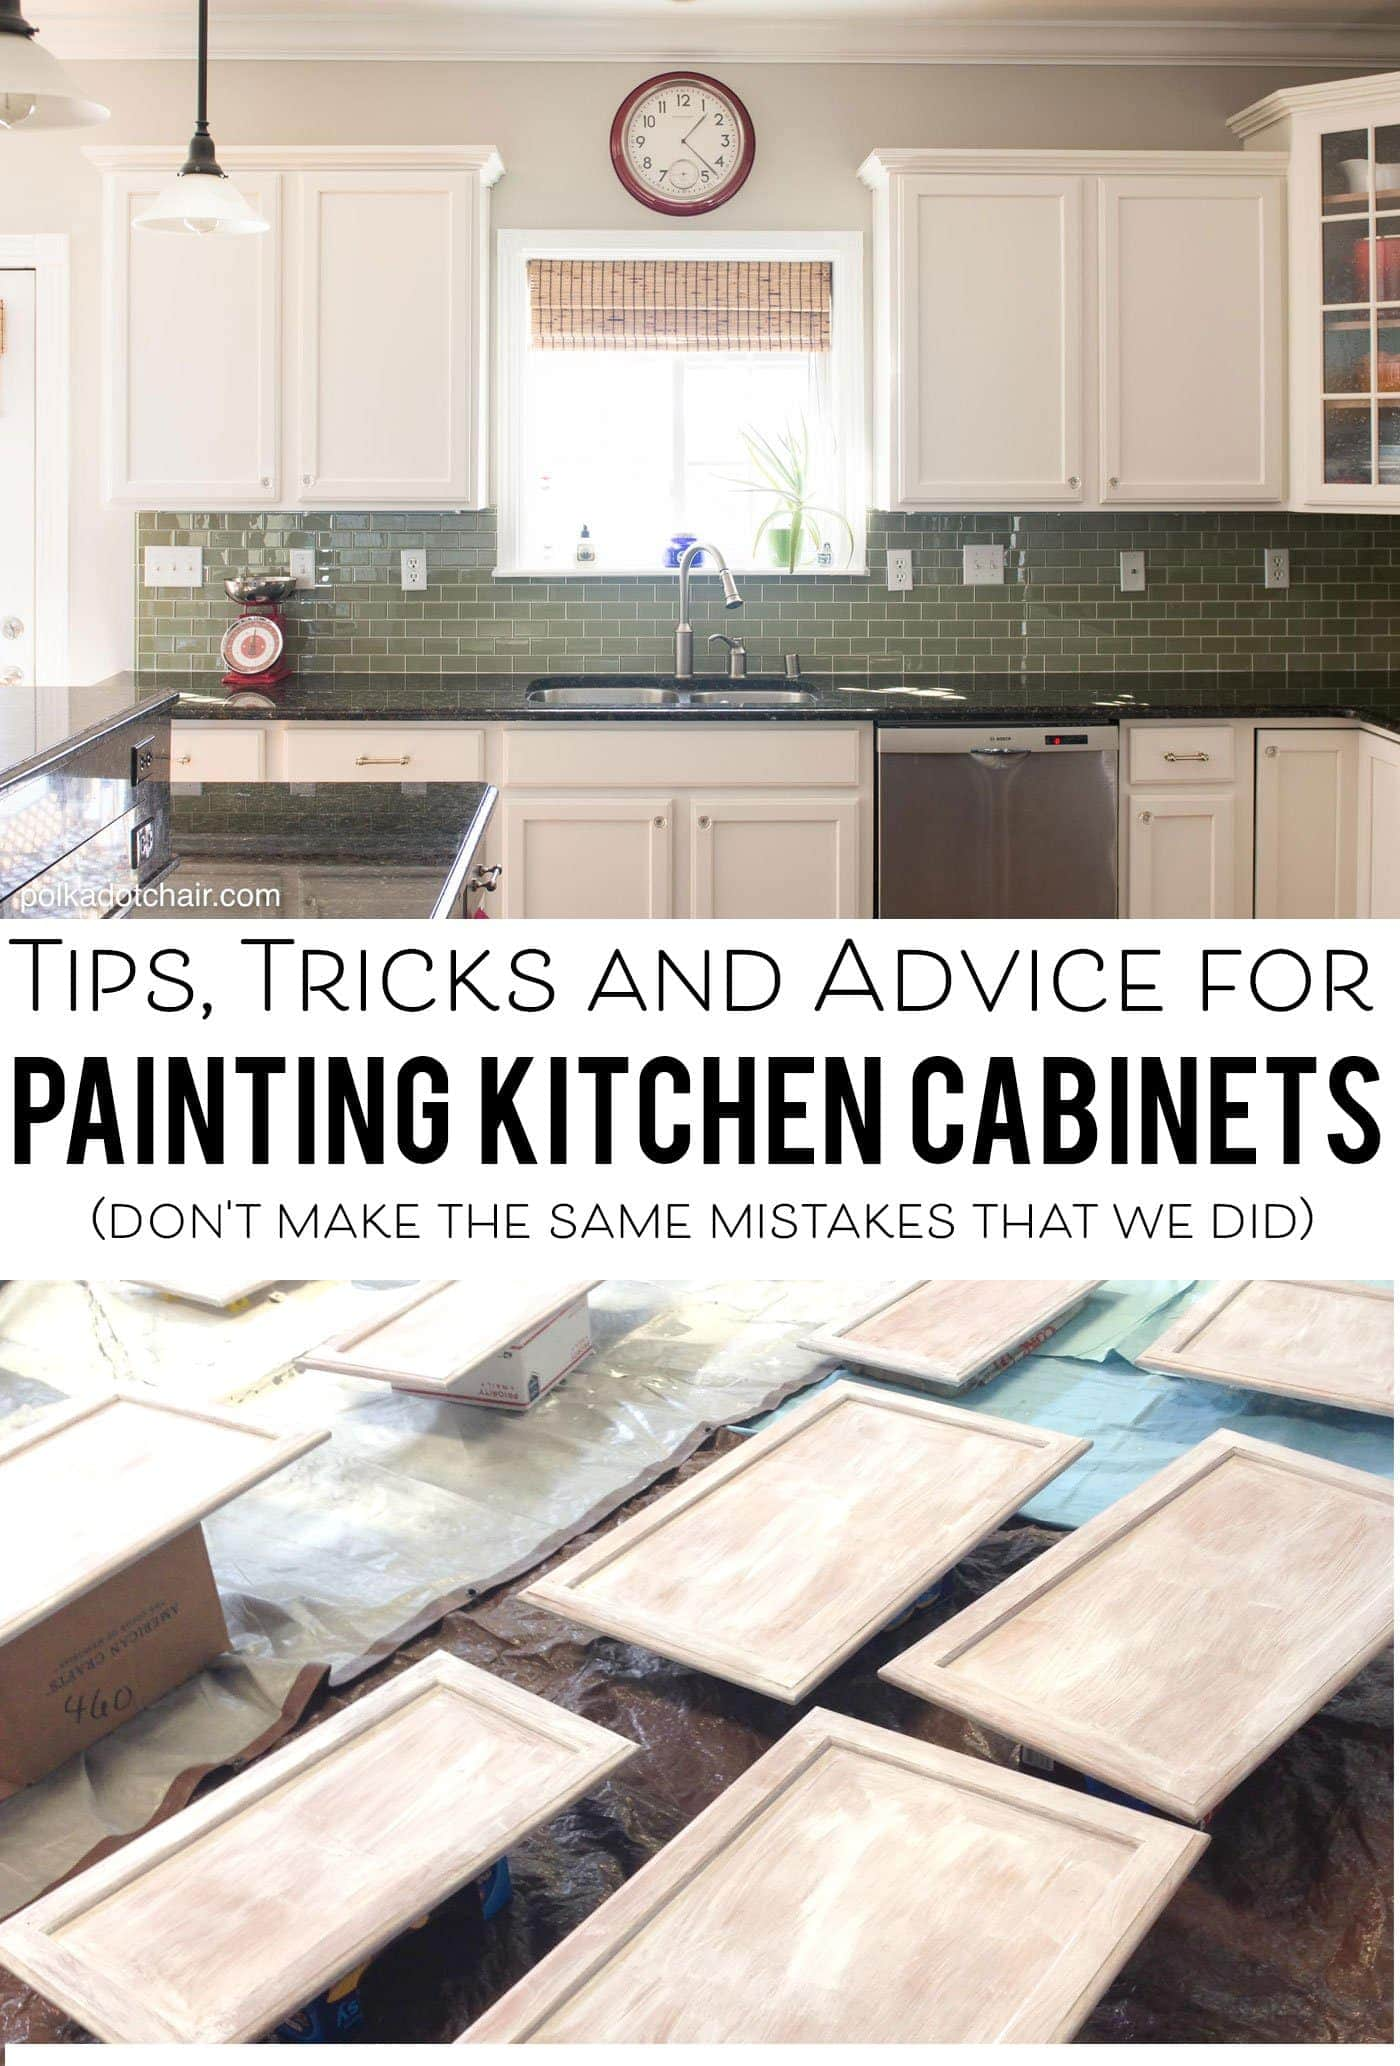 To Paint A Kitchen Tips For Painting Kitchen Cabinets The Polka Dot Chair